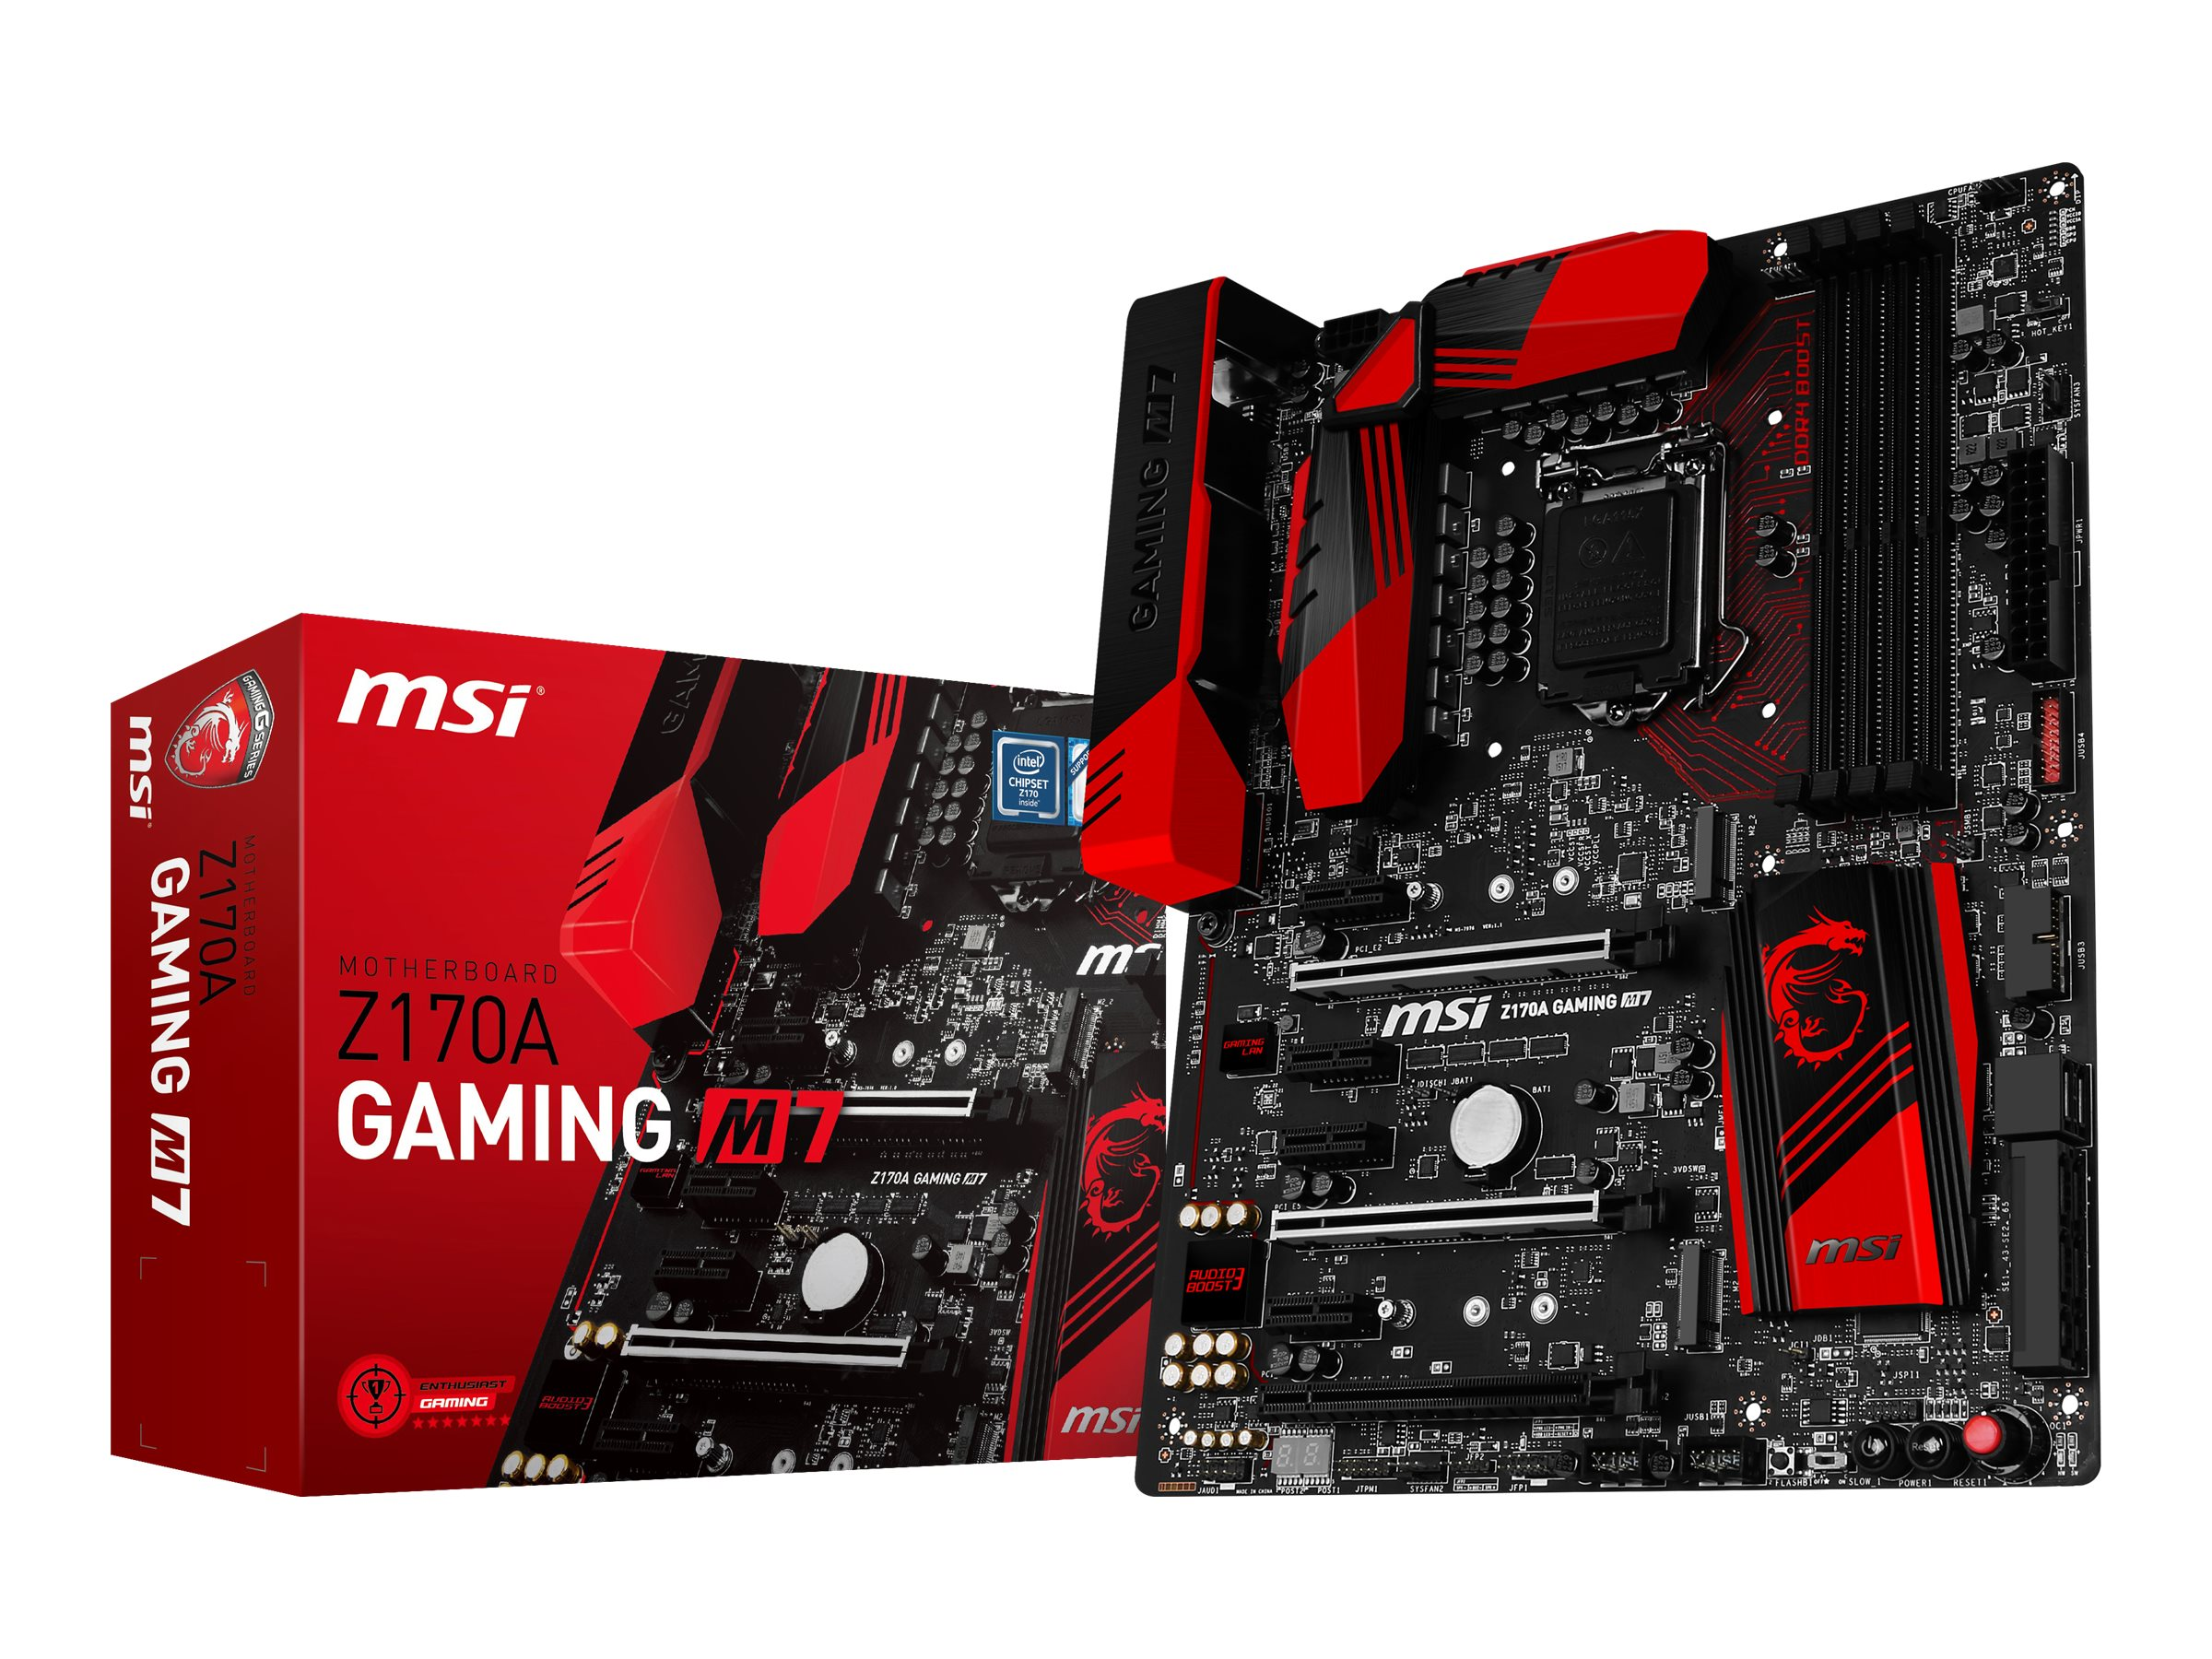 Microstar Motherboard, Z170A Gaming M7